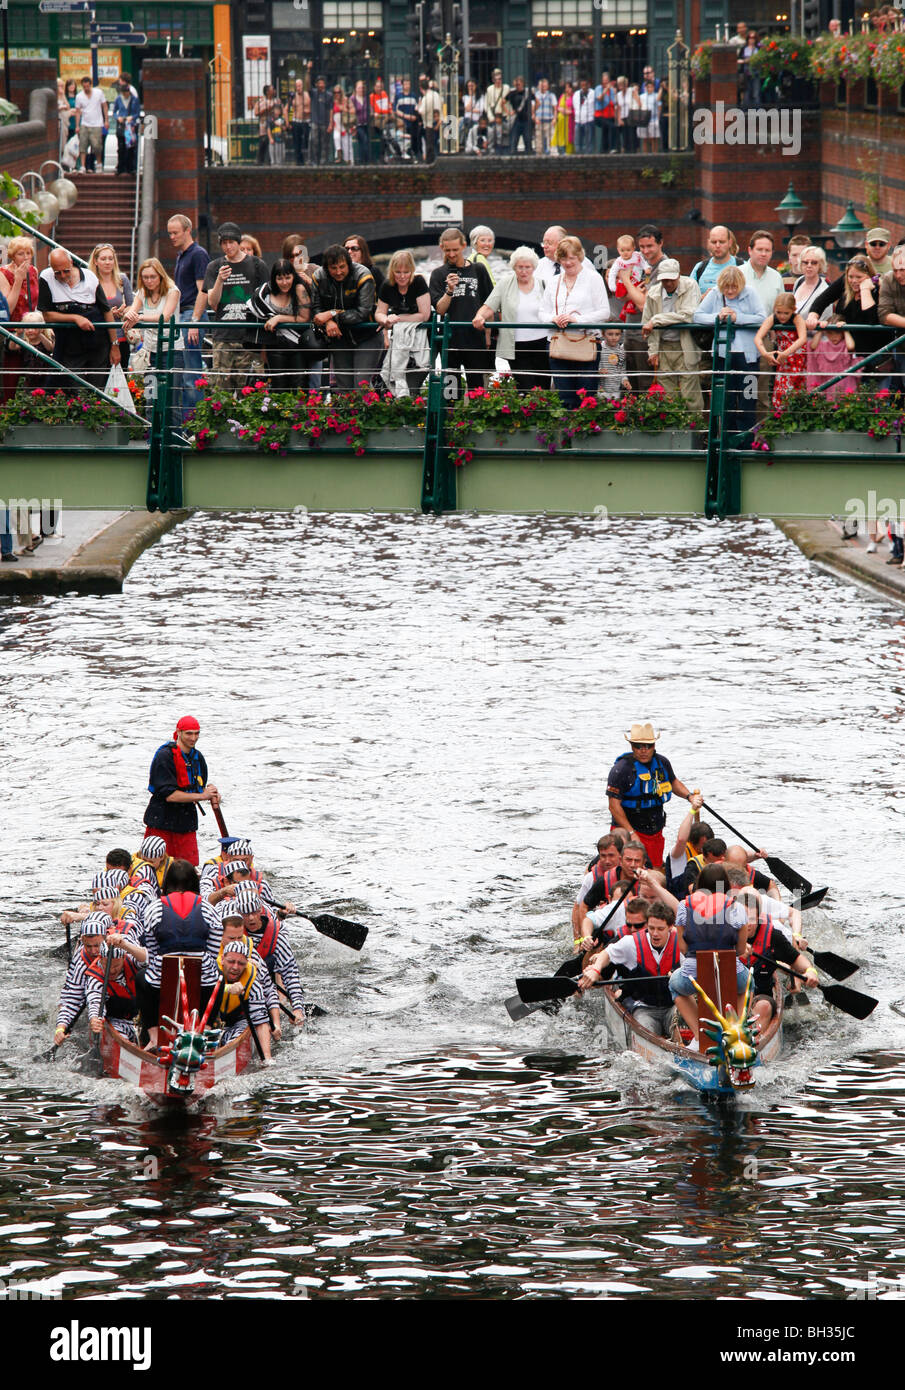 Dragon boat racing on the canal in Brindleyplace, Birmingham. - Stock Image